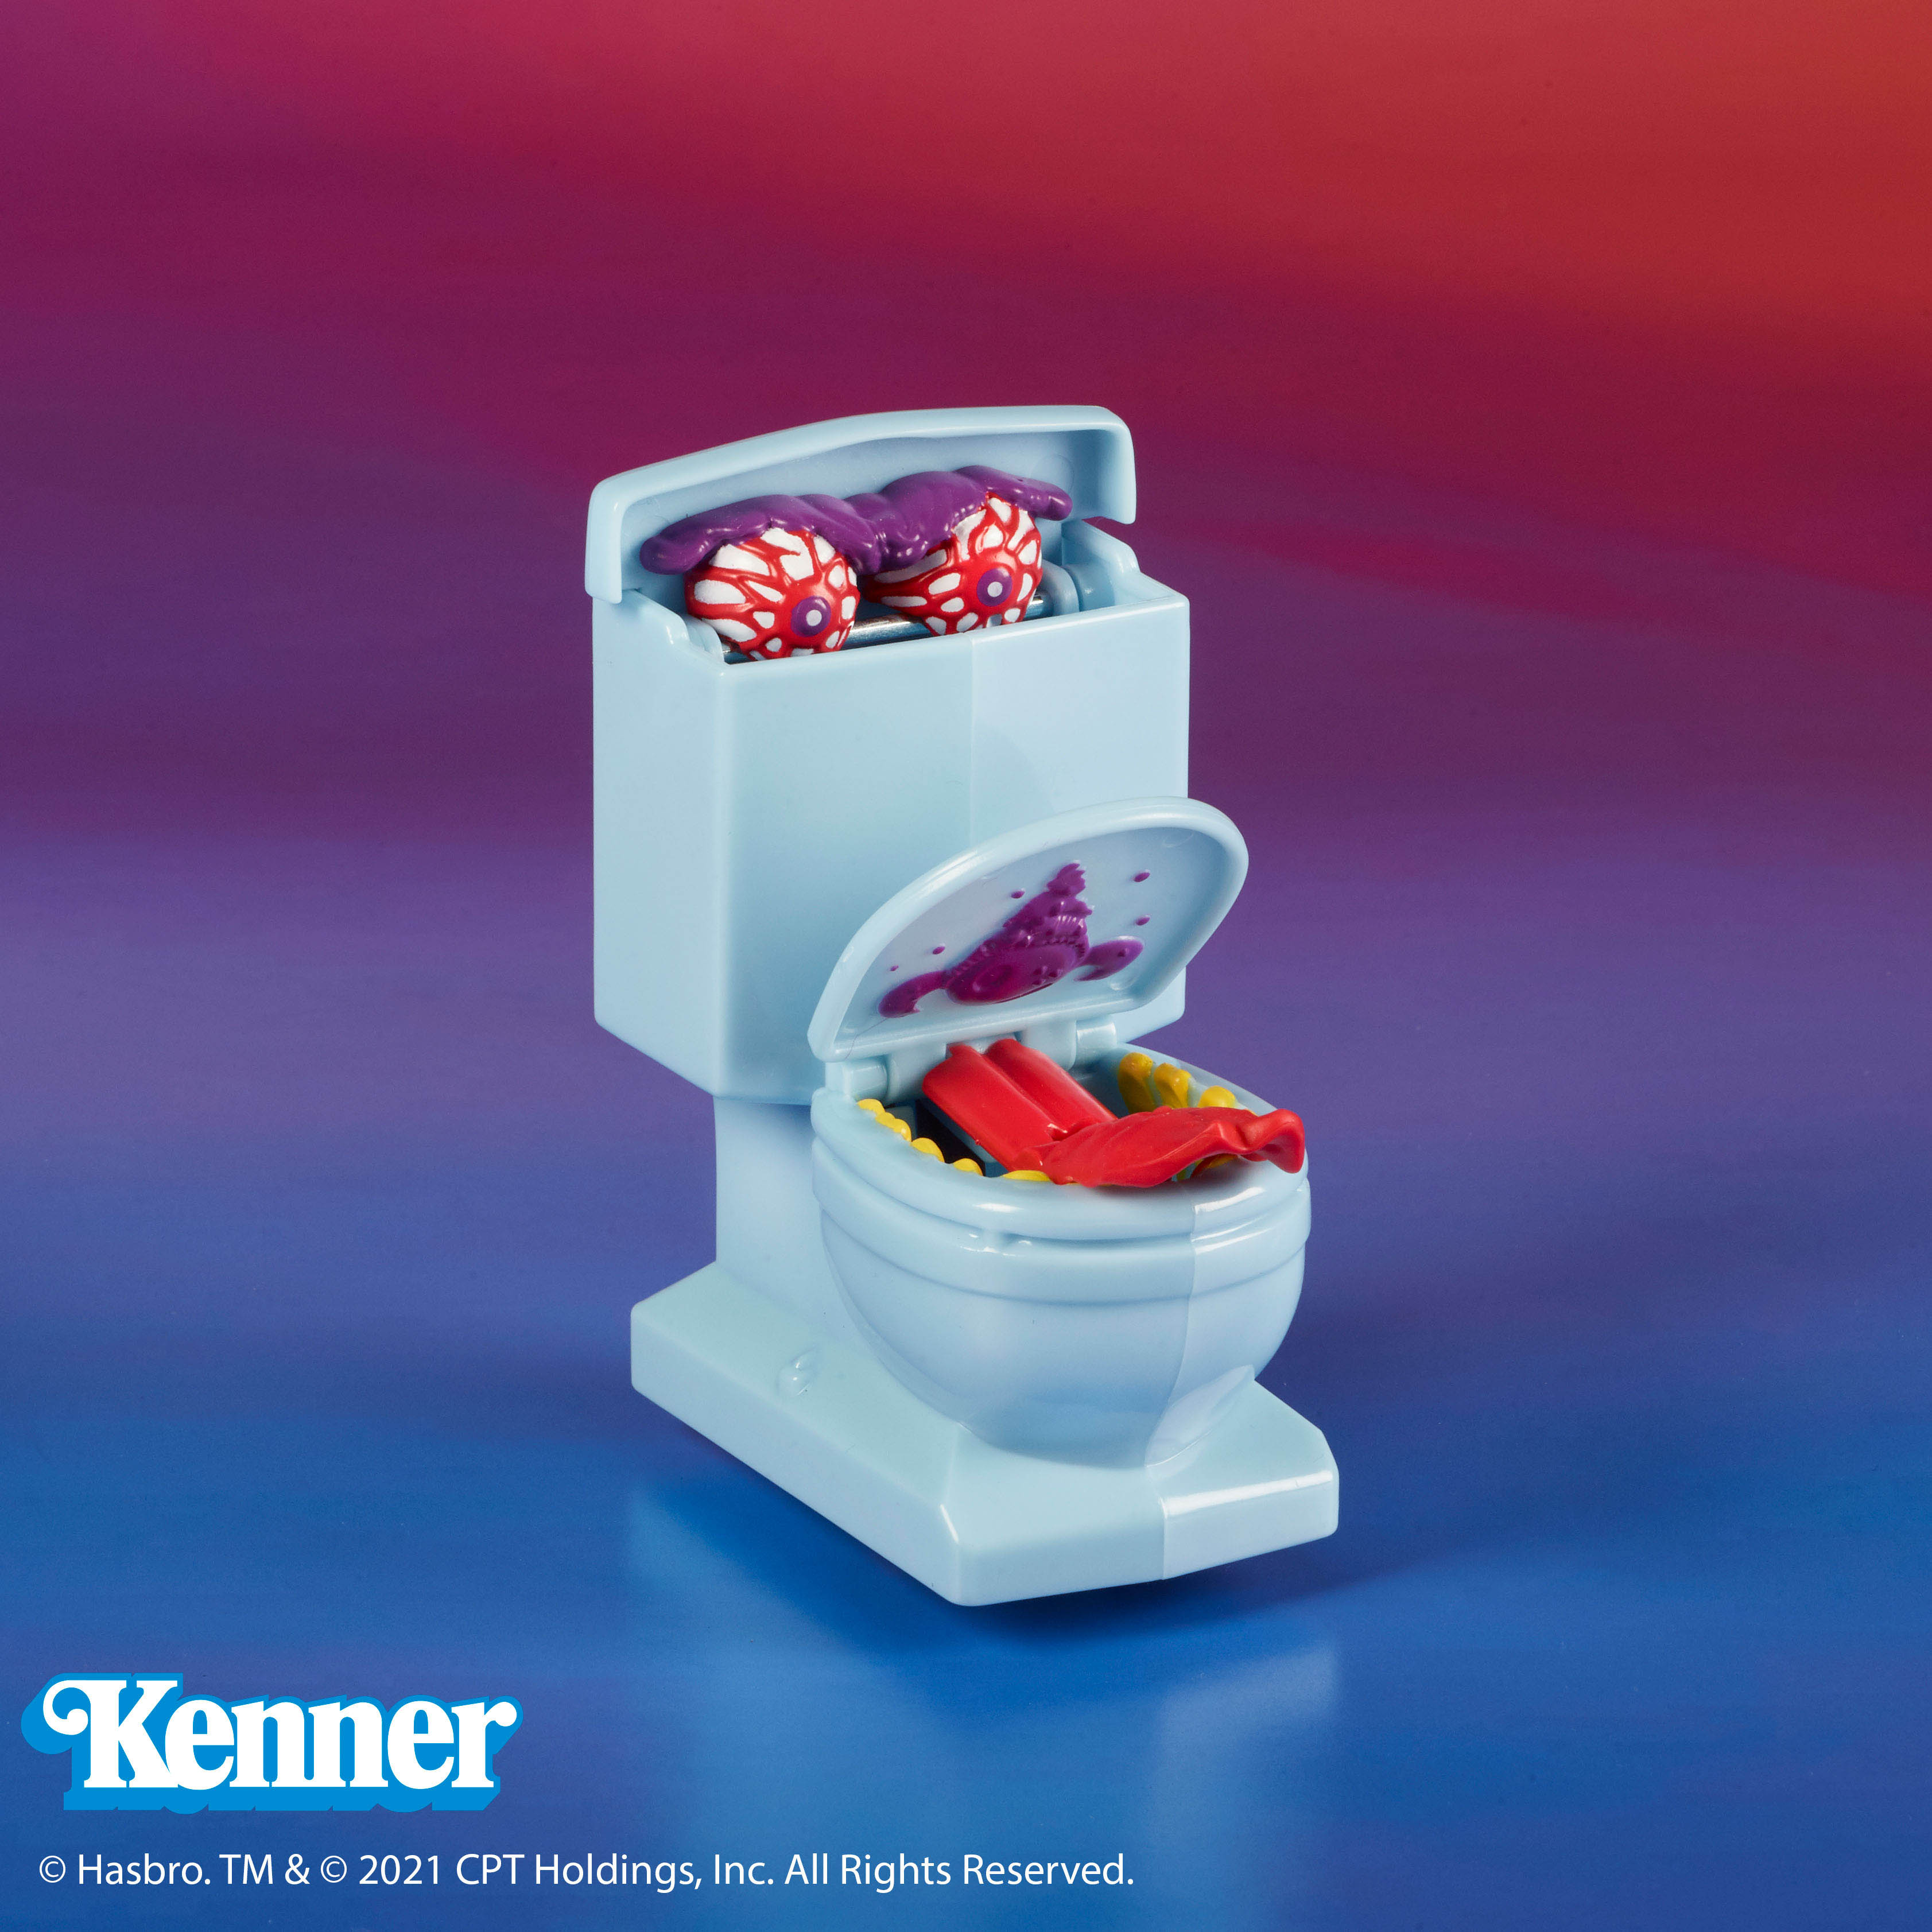 The Real Ghostbusters Kenner Fearsome Flush